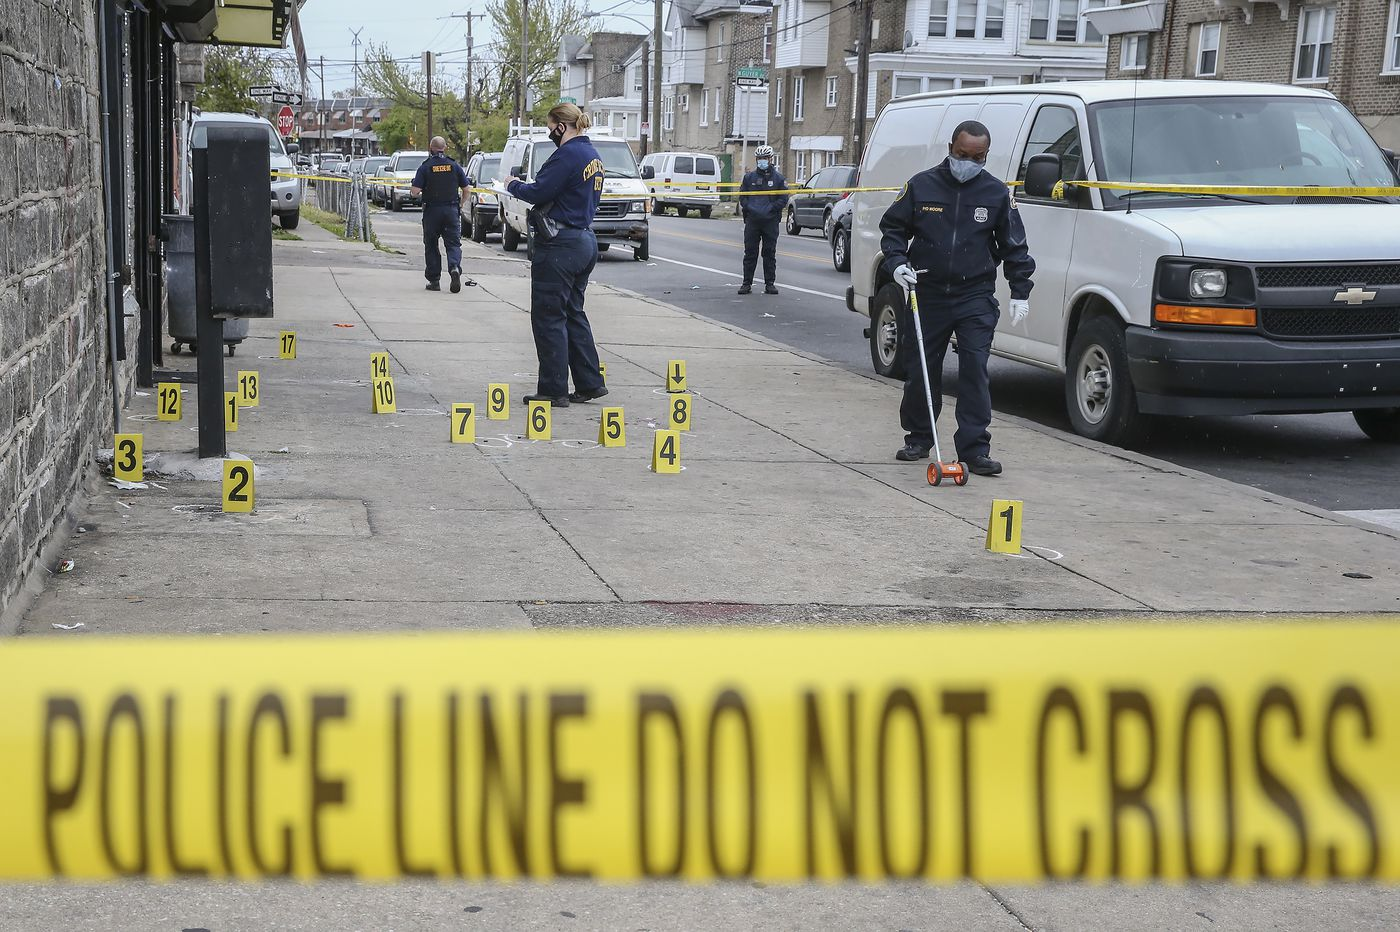 Two killings in Philadelphia on Thursday raise city's total to 120 for the year — 18% more than a year ago